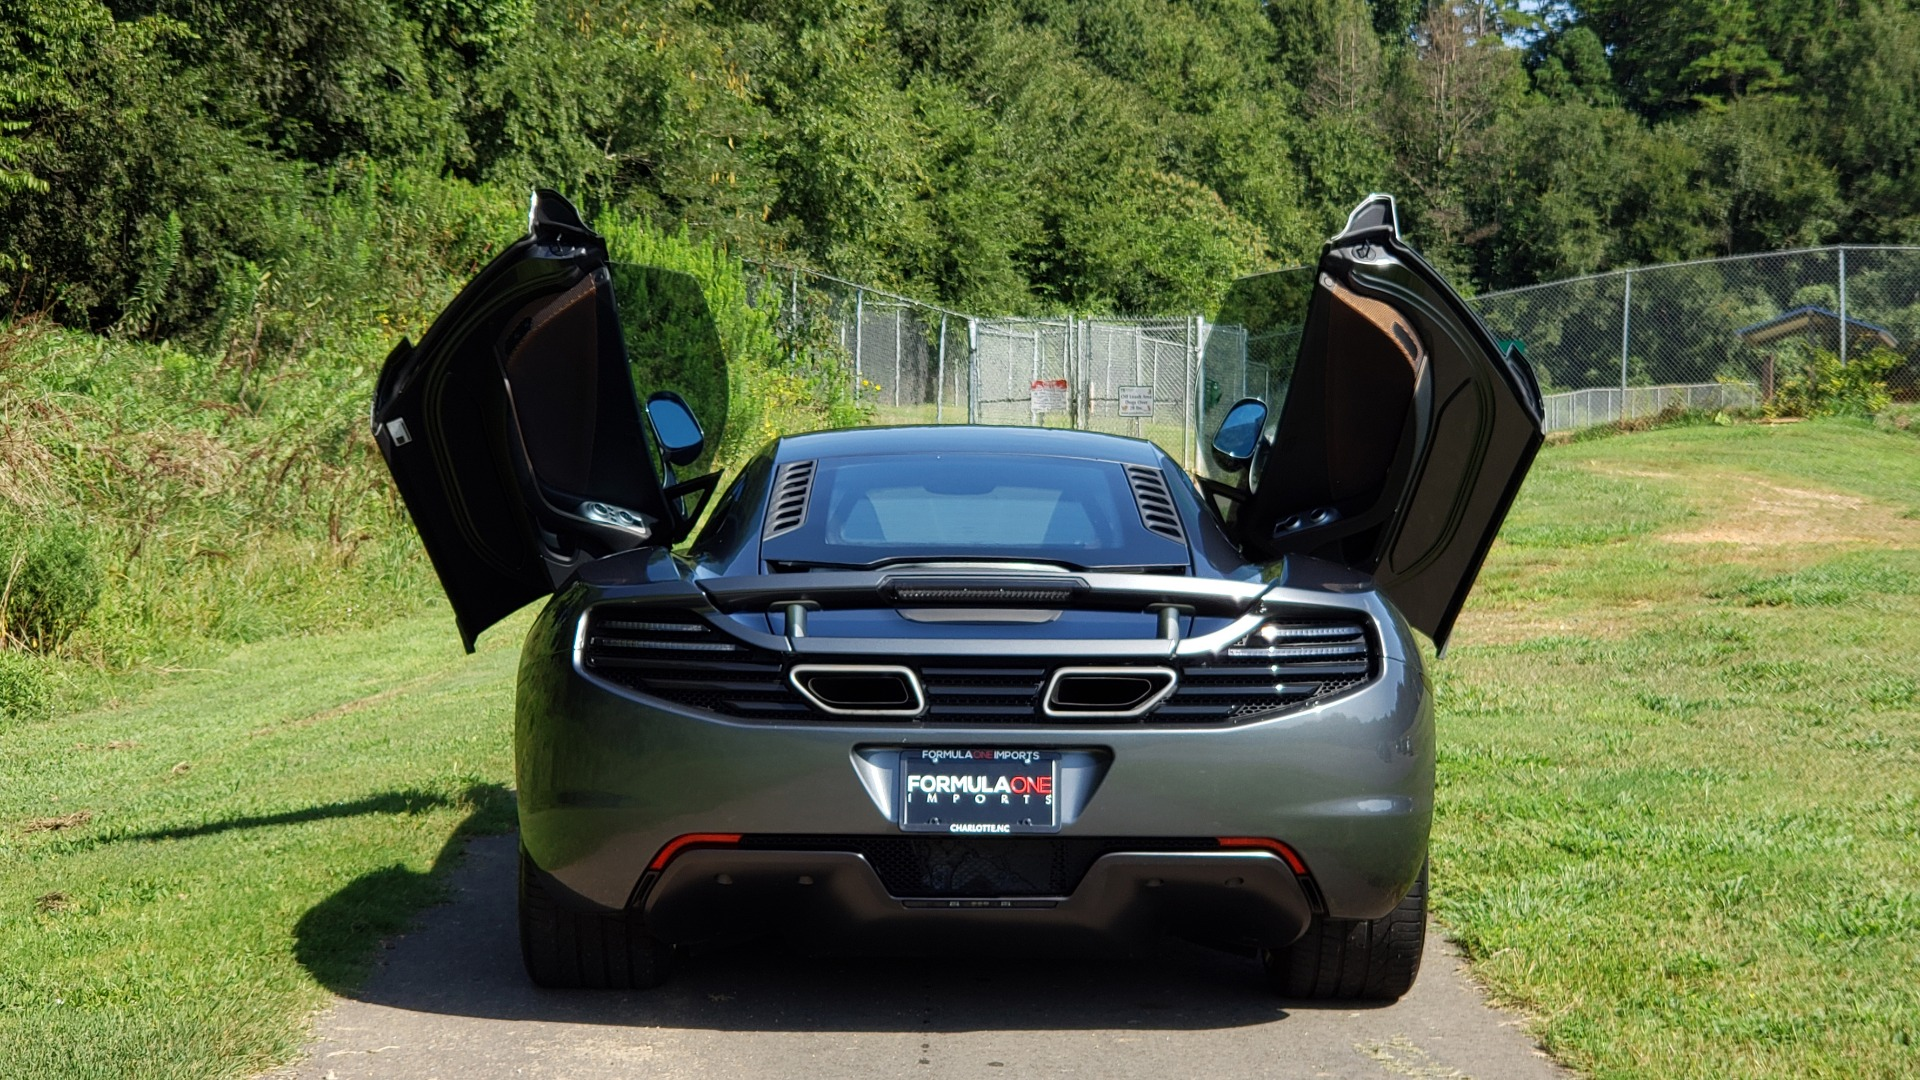 Used 2012 McLaren MP4-12C COUPE / 3.8 L V8 592HP / AUTO / NAV / CCB / LOW MILES for sale Sold at Formula Imports in Charlotte NC 28227 14